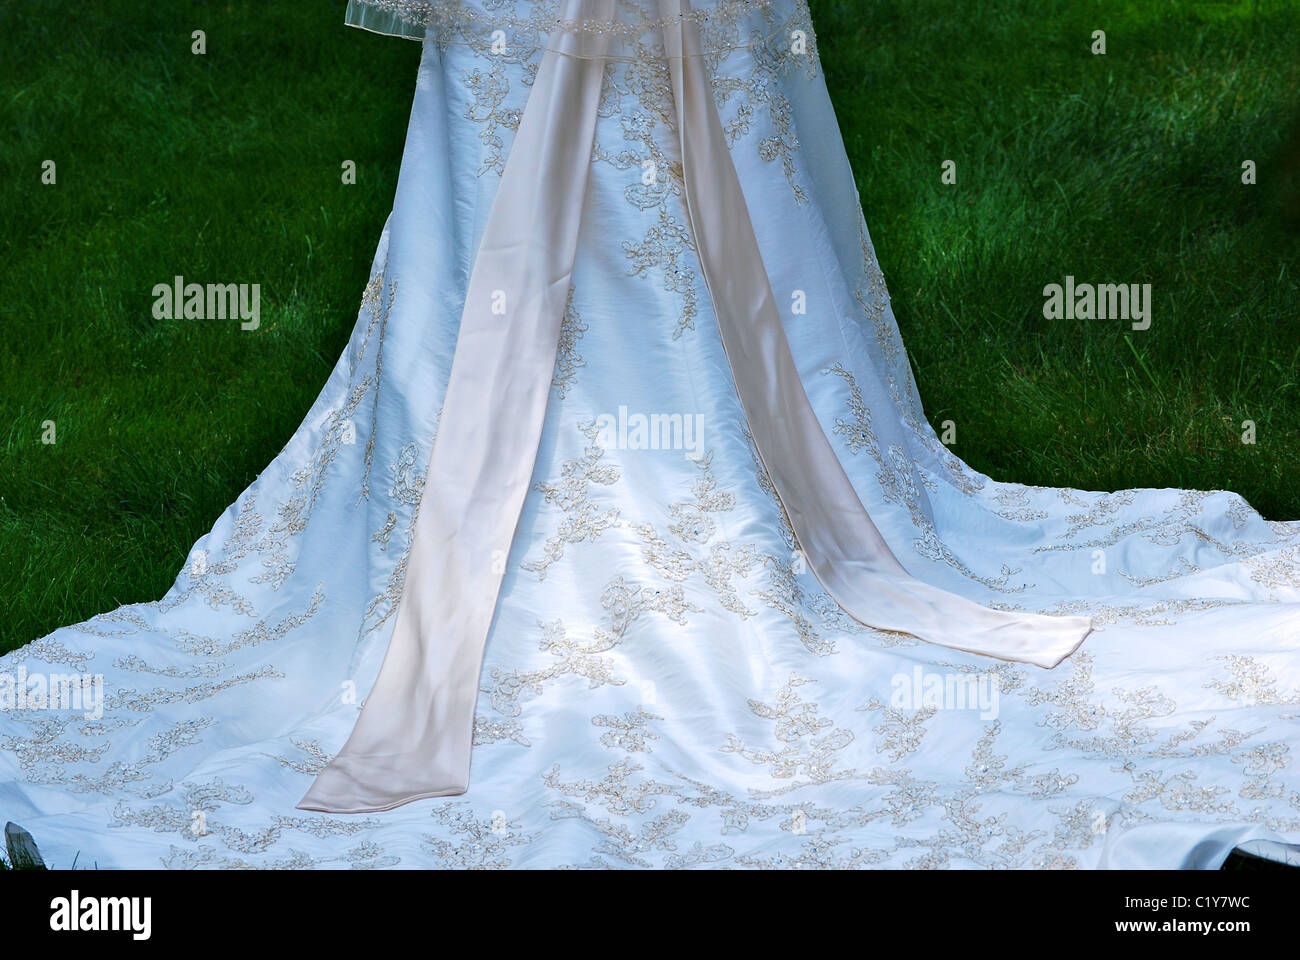 Flowing Gown Stock Photos & Flowing Gown Stock Images - Alamy